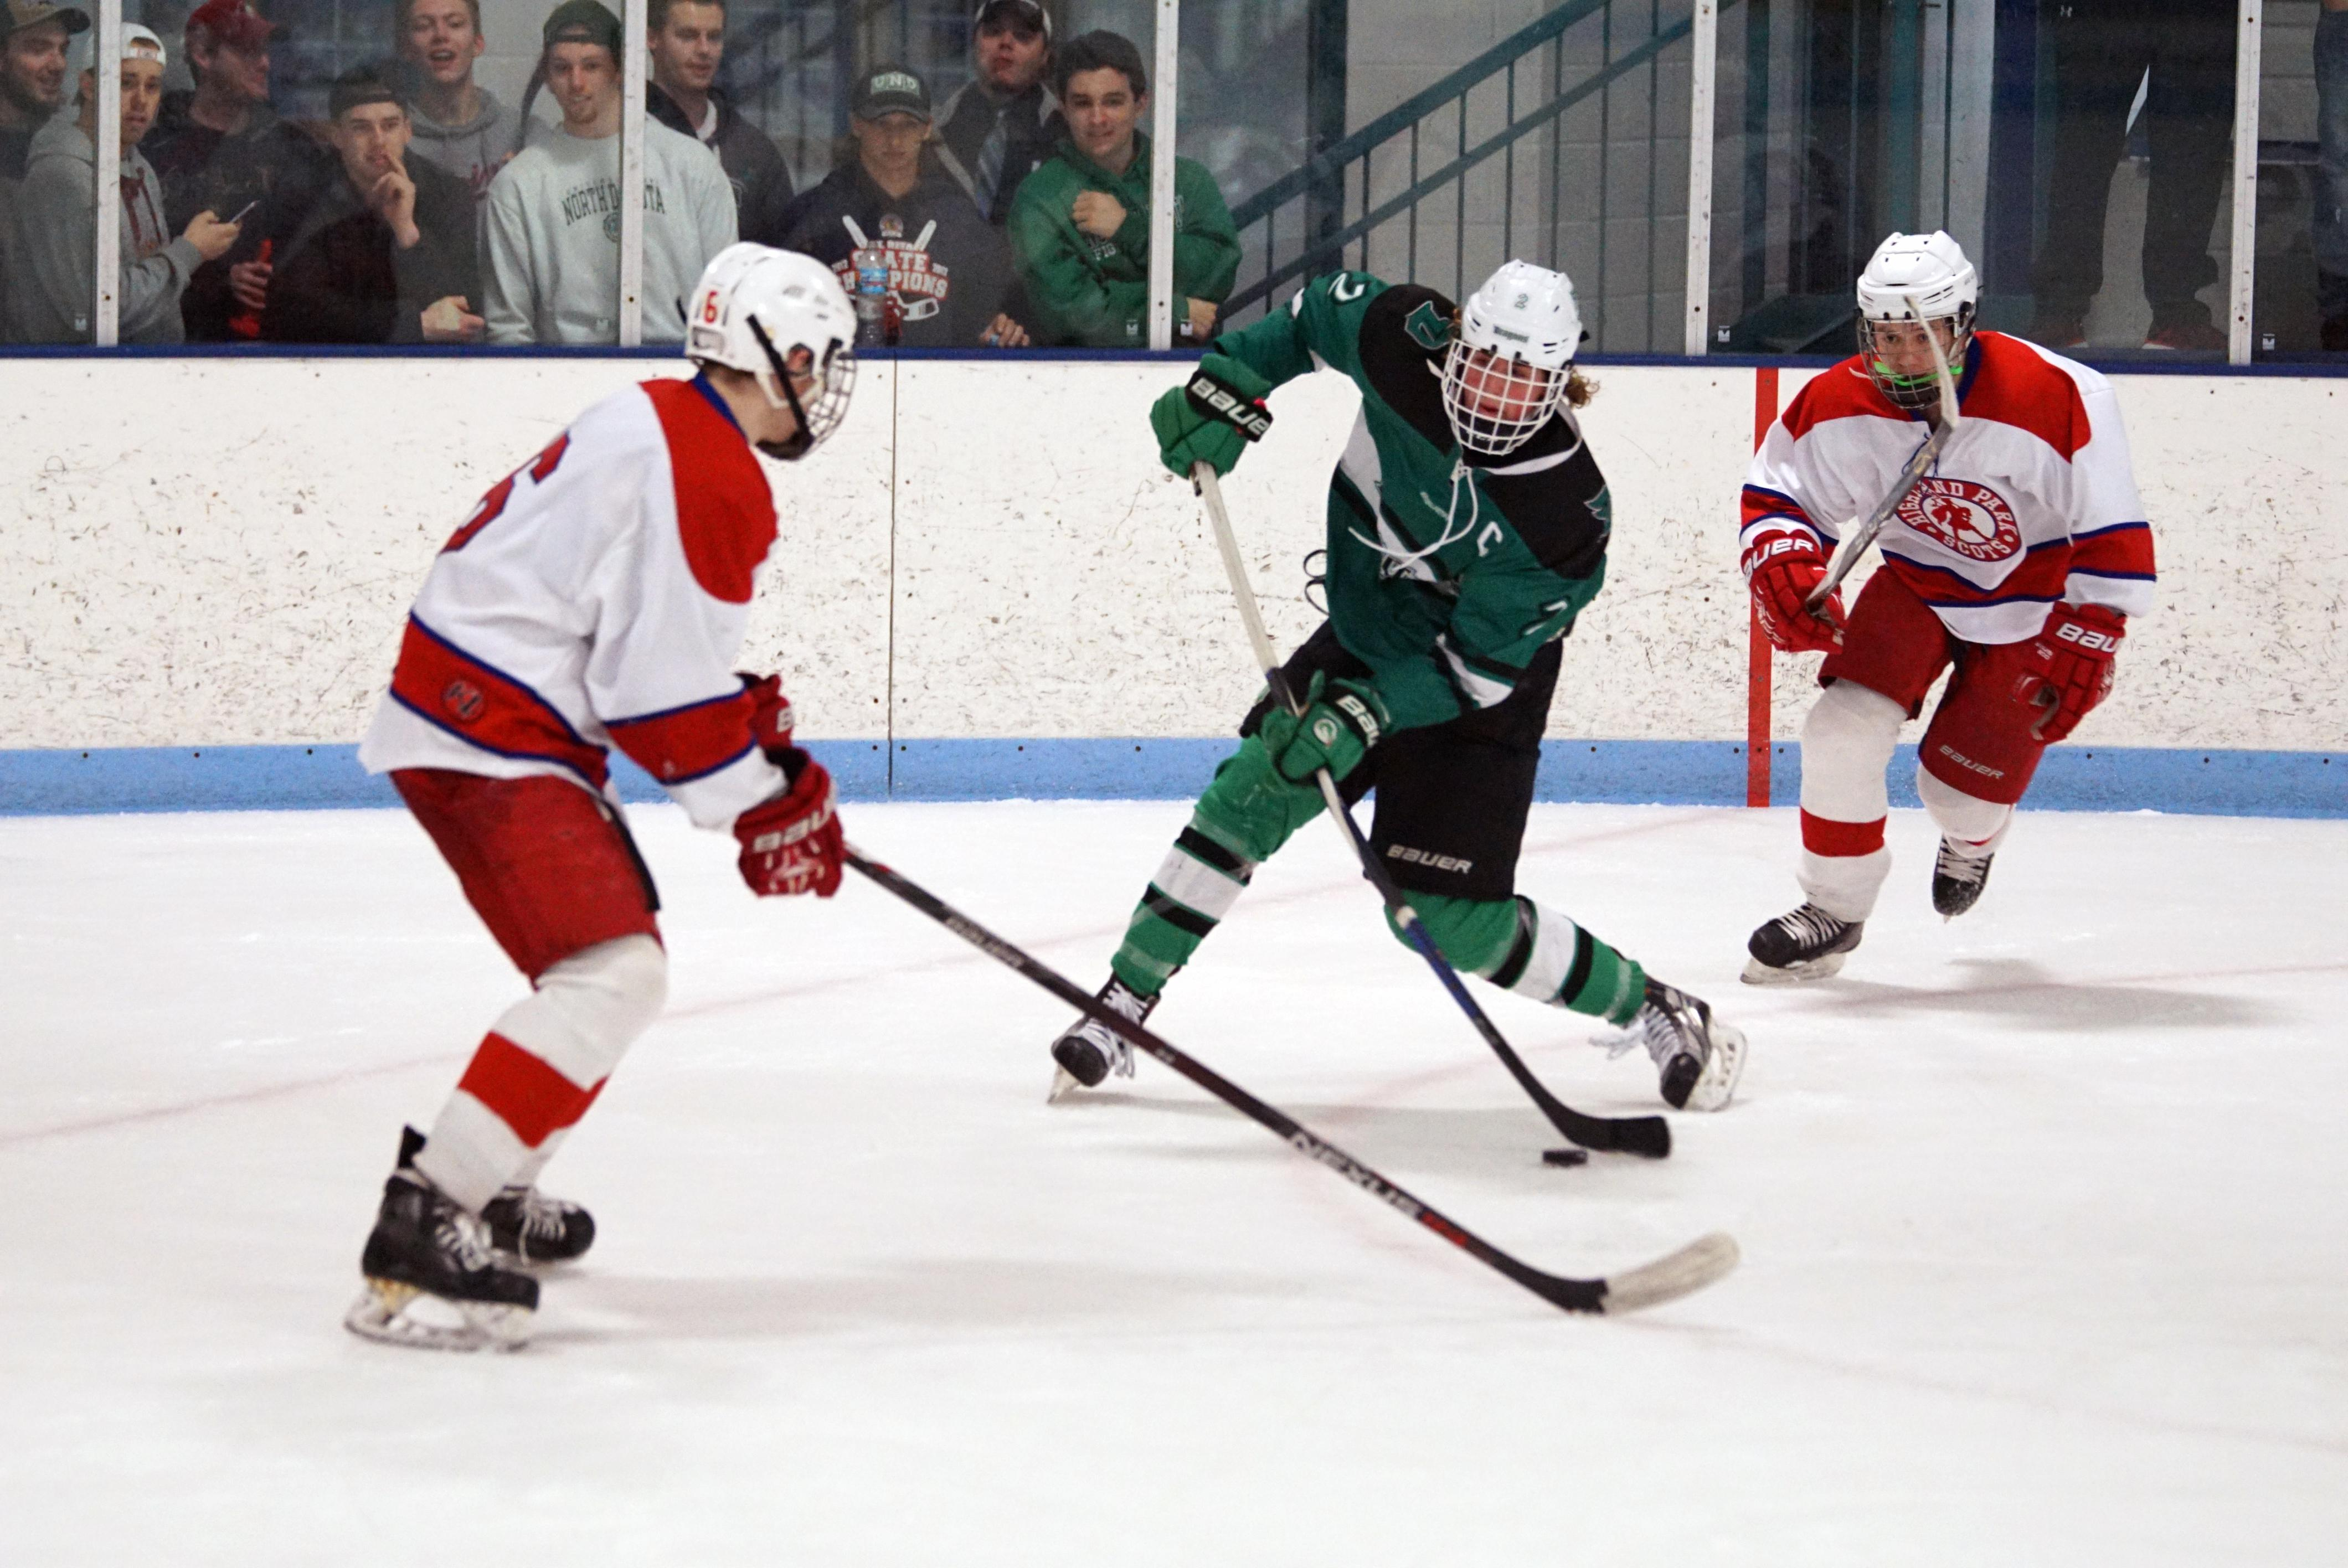 Brendan Westbrook rips a slapshot in the third period. Photo by Trevor Squire, SportsEngine